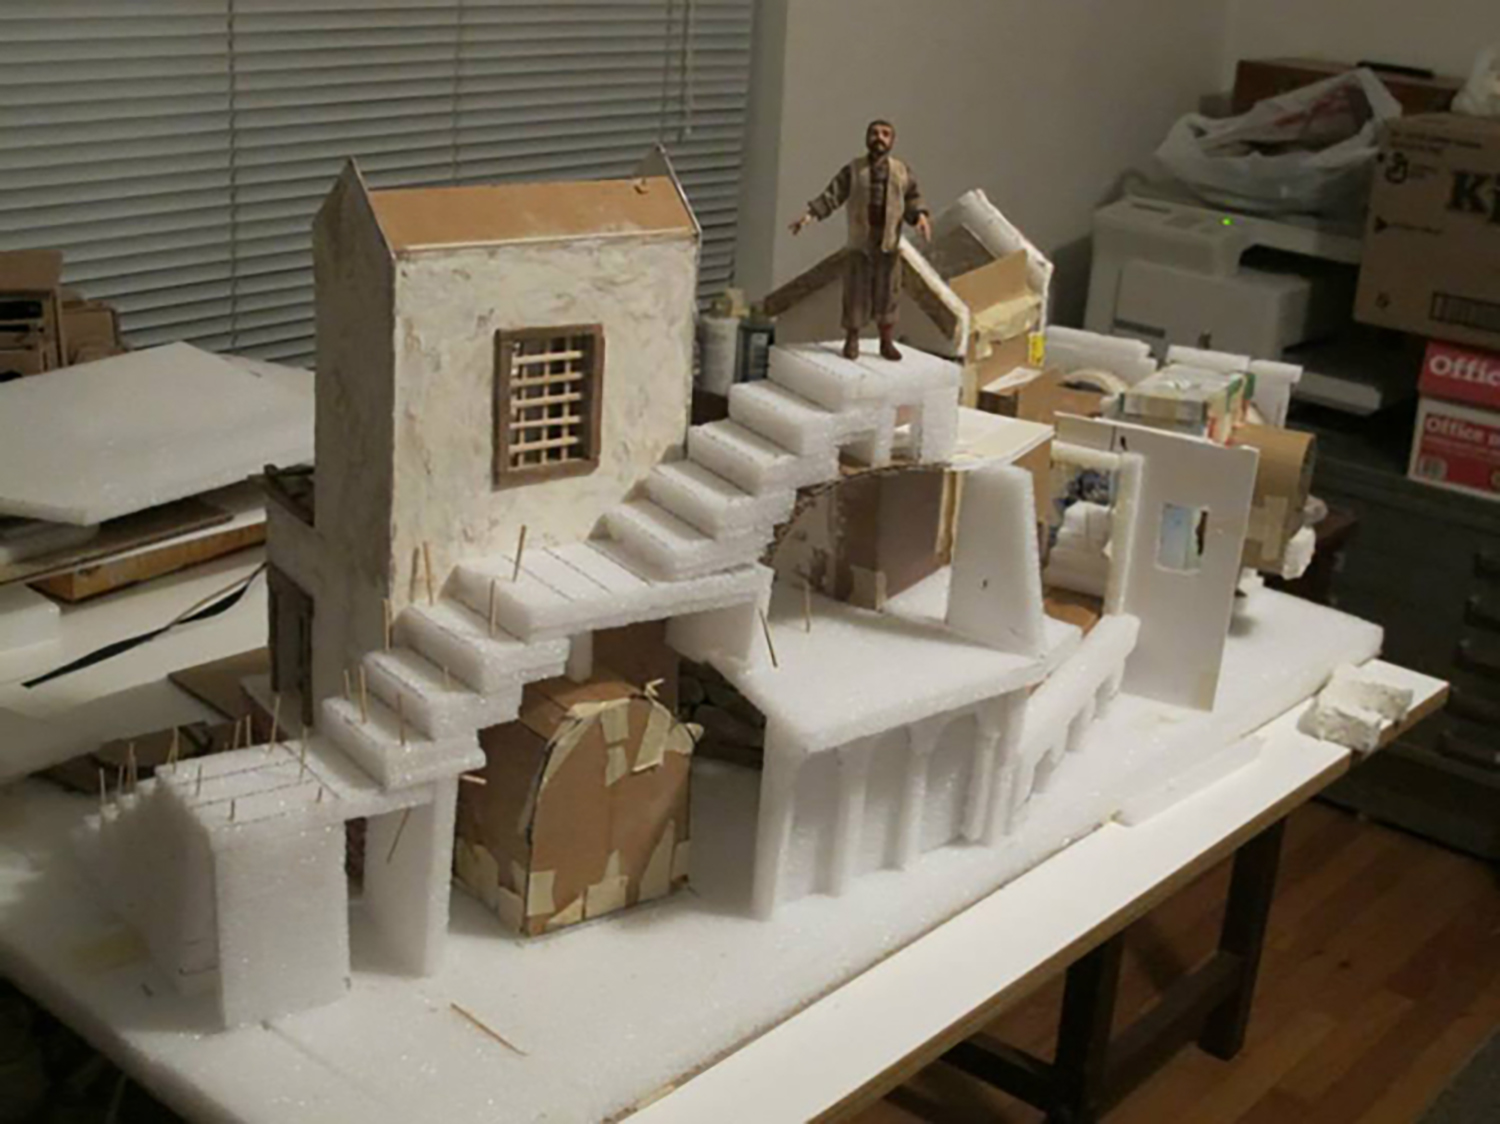 Figure 4: Materials consisting of lightweight Styrofoam, cardboard, and wood are used to create the structures.